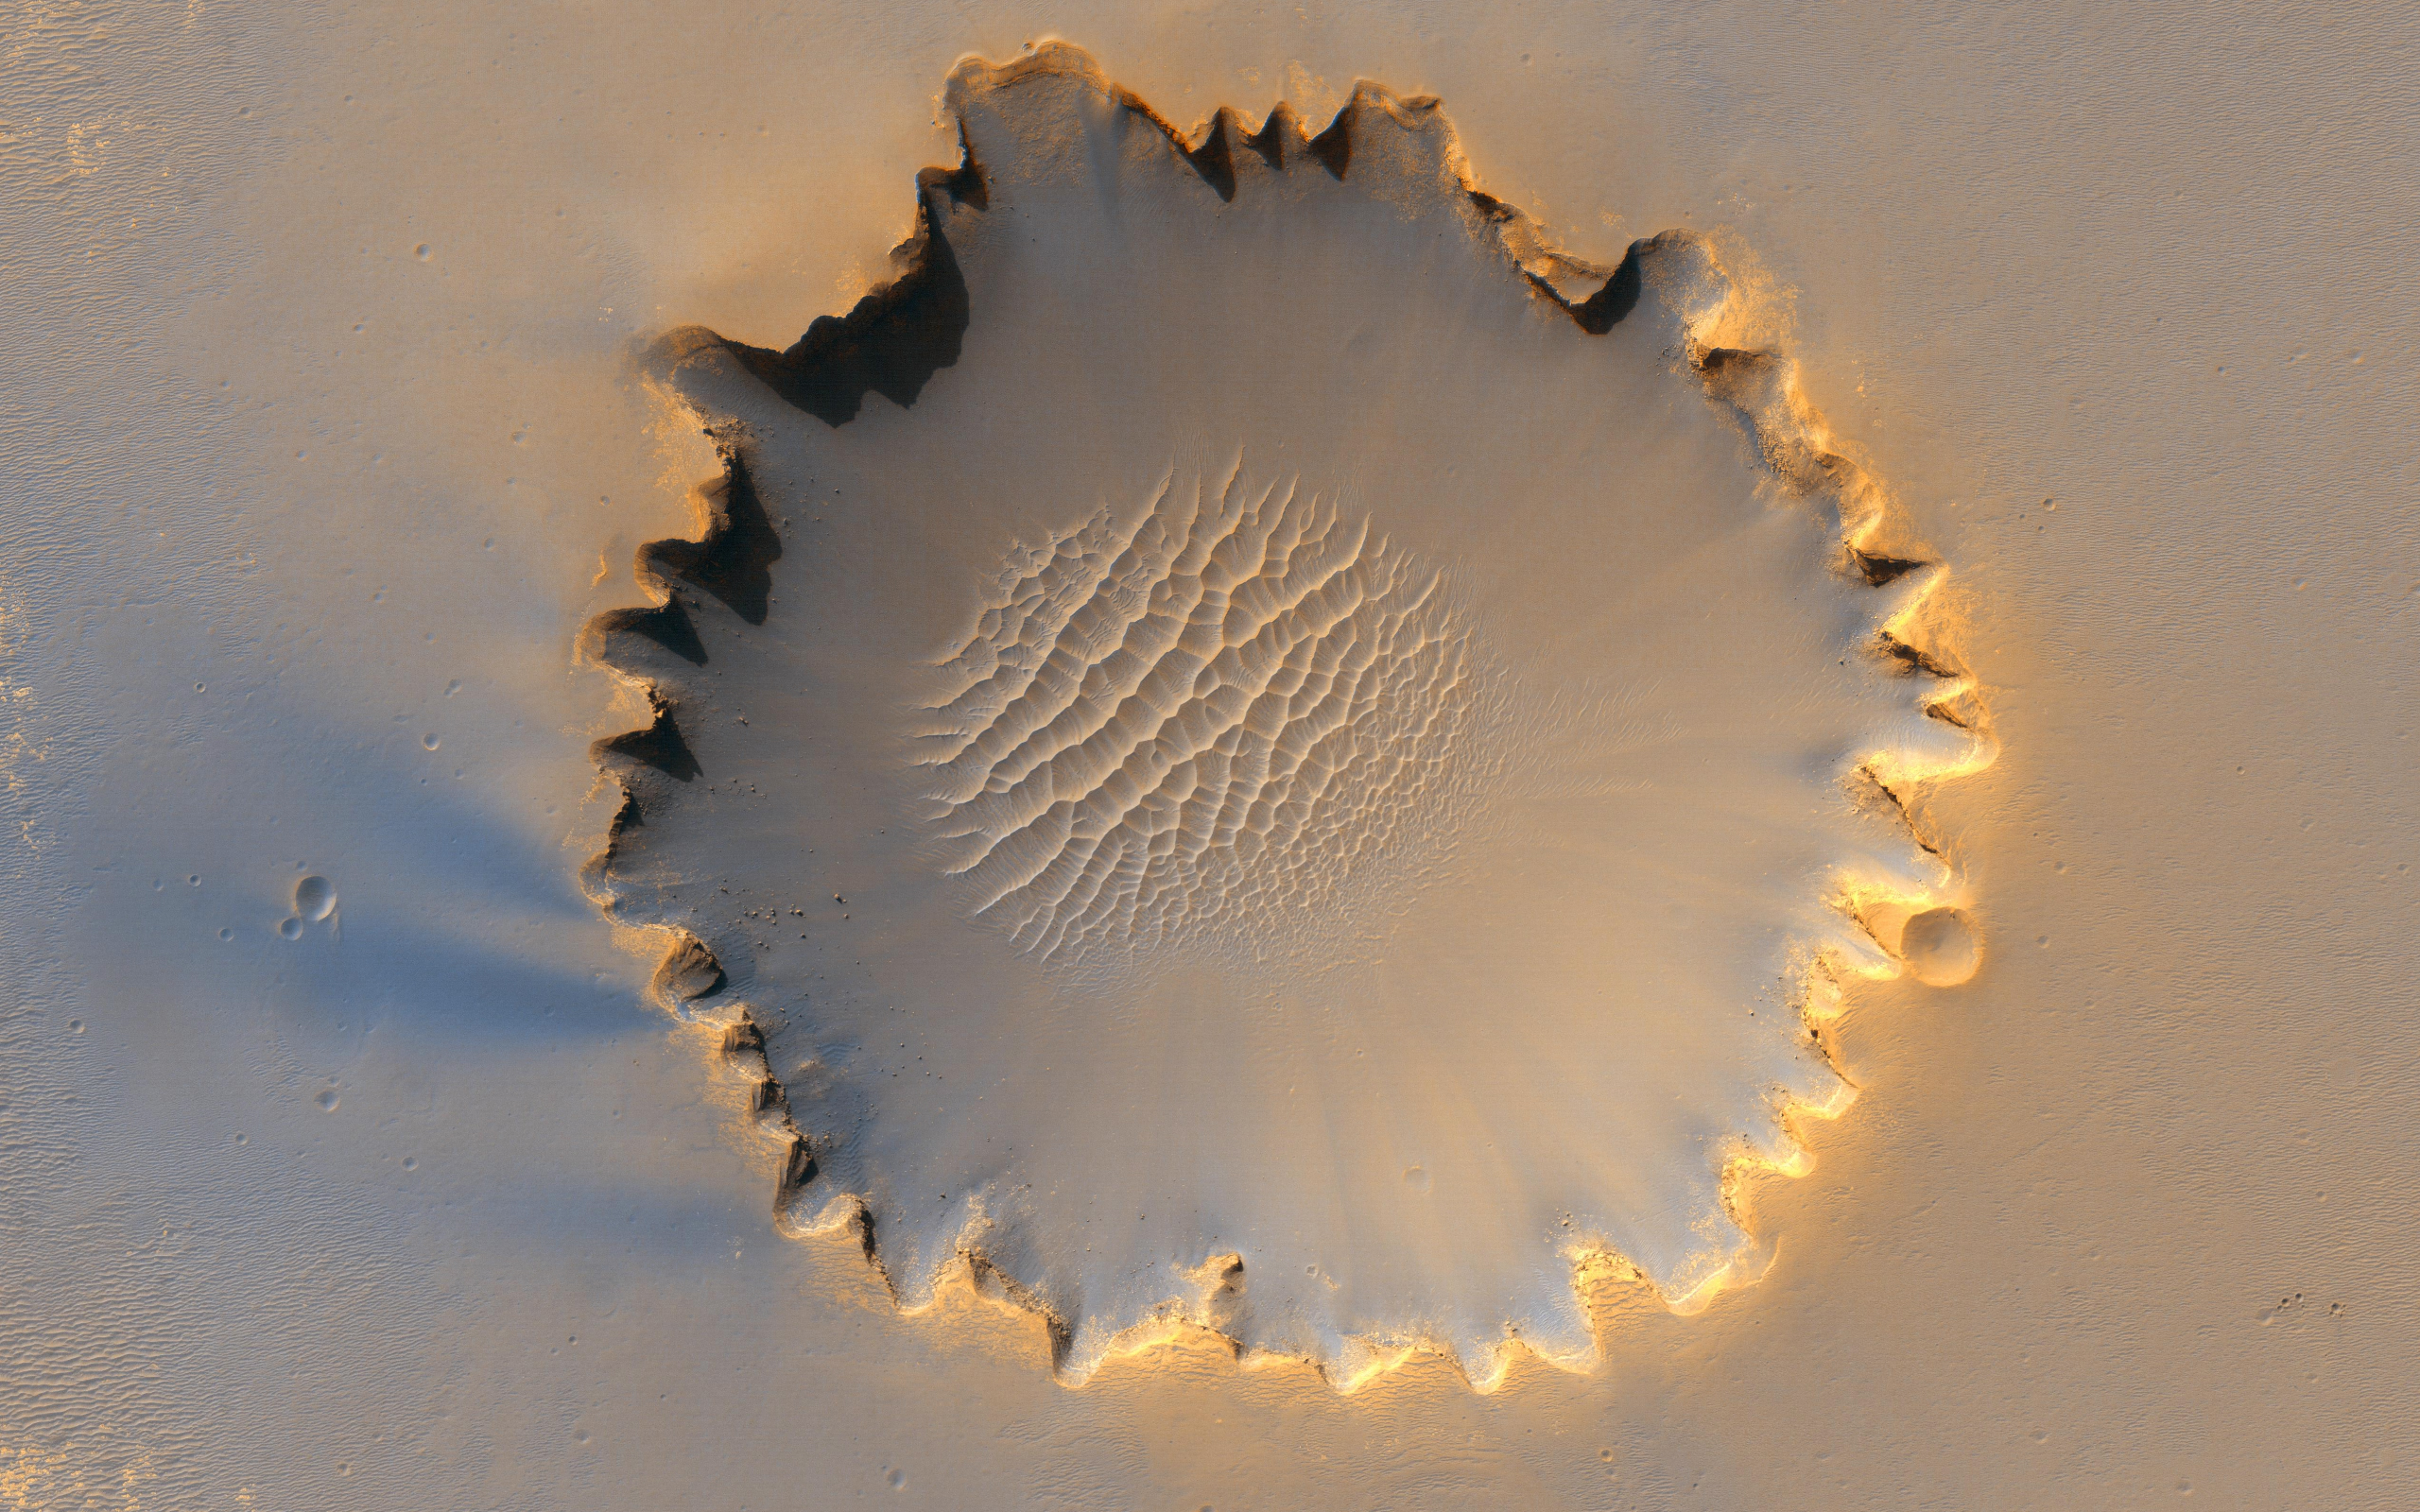 Images of Mars – The Center for Planetary Science